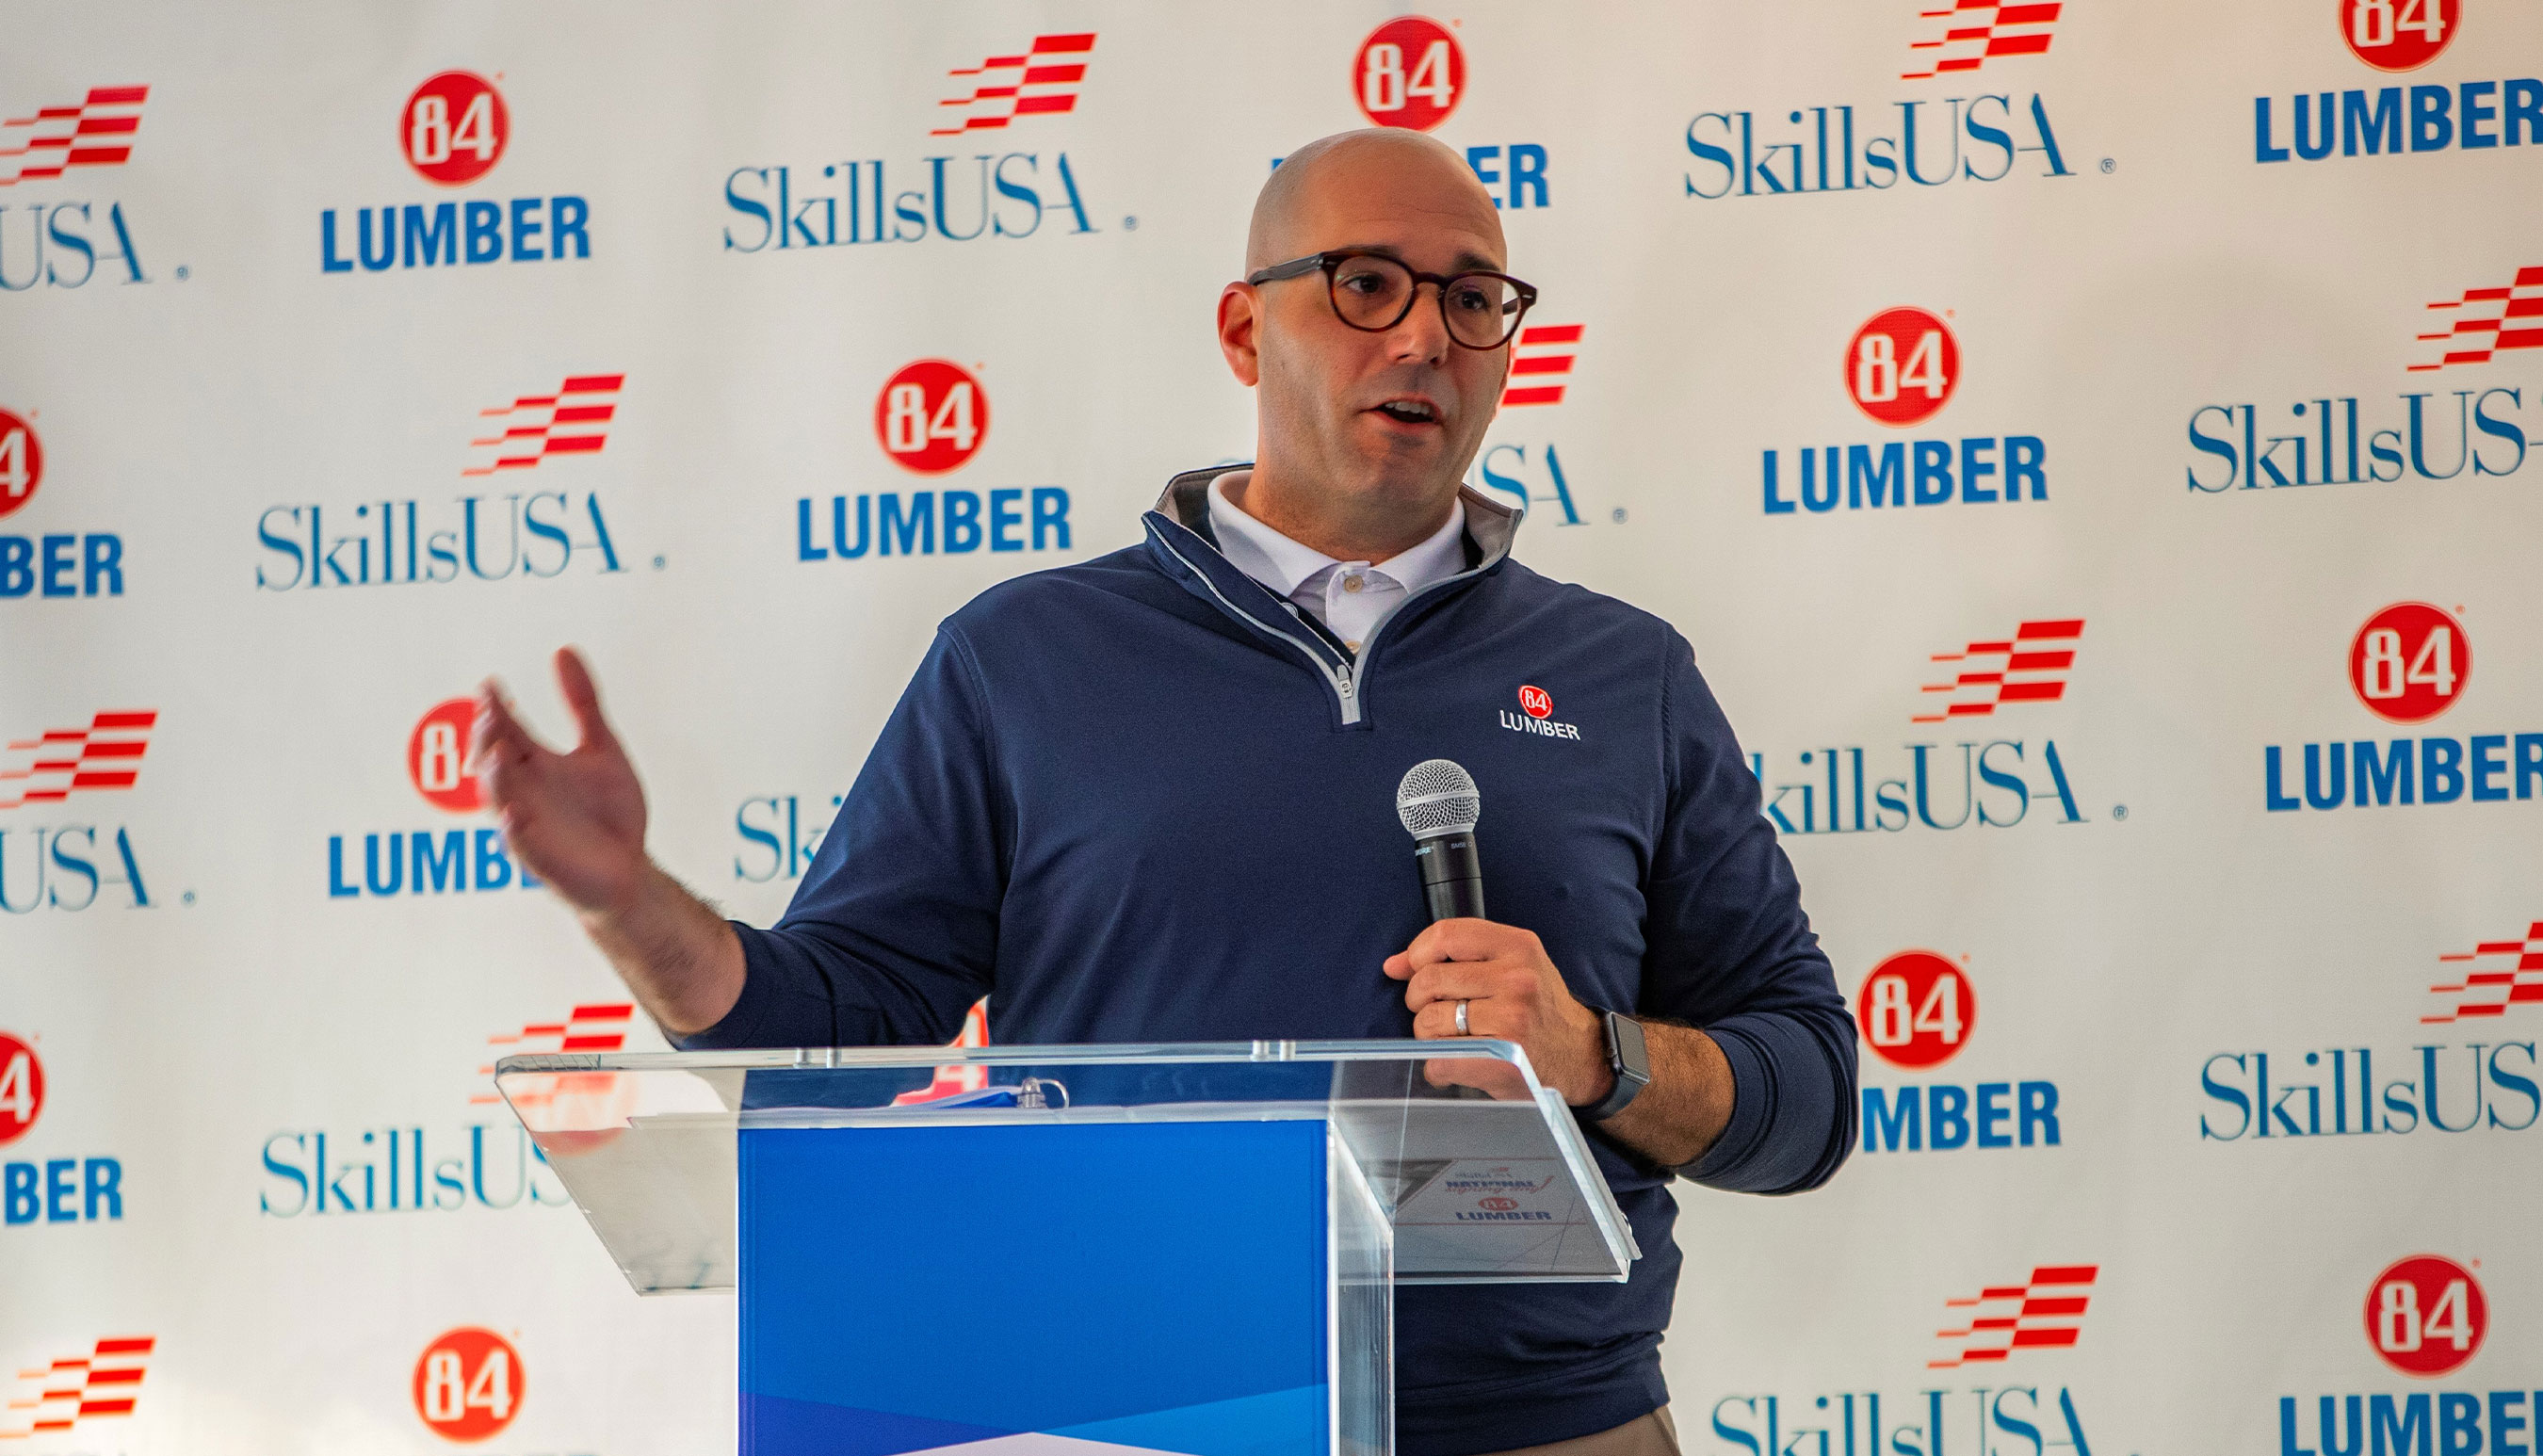 Ken Kucera, VP of Manufacturing, speaks to job opportunities within the building industry at SkillsUSA National Signing Day Event in Pittsburgh, PA